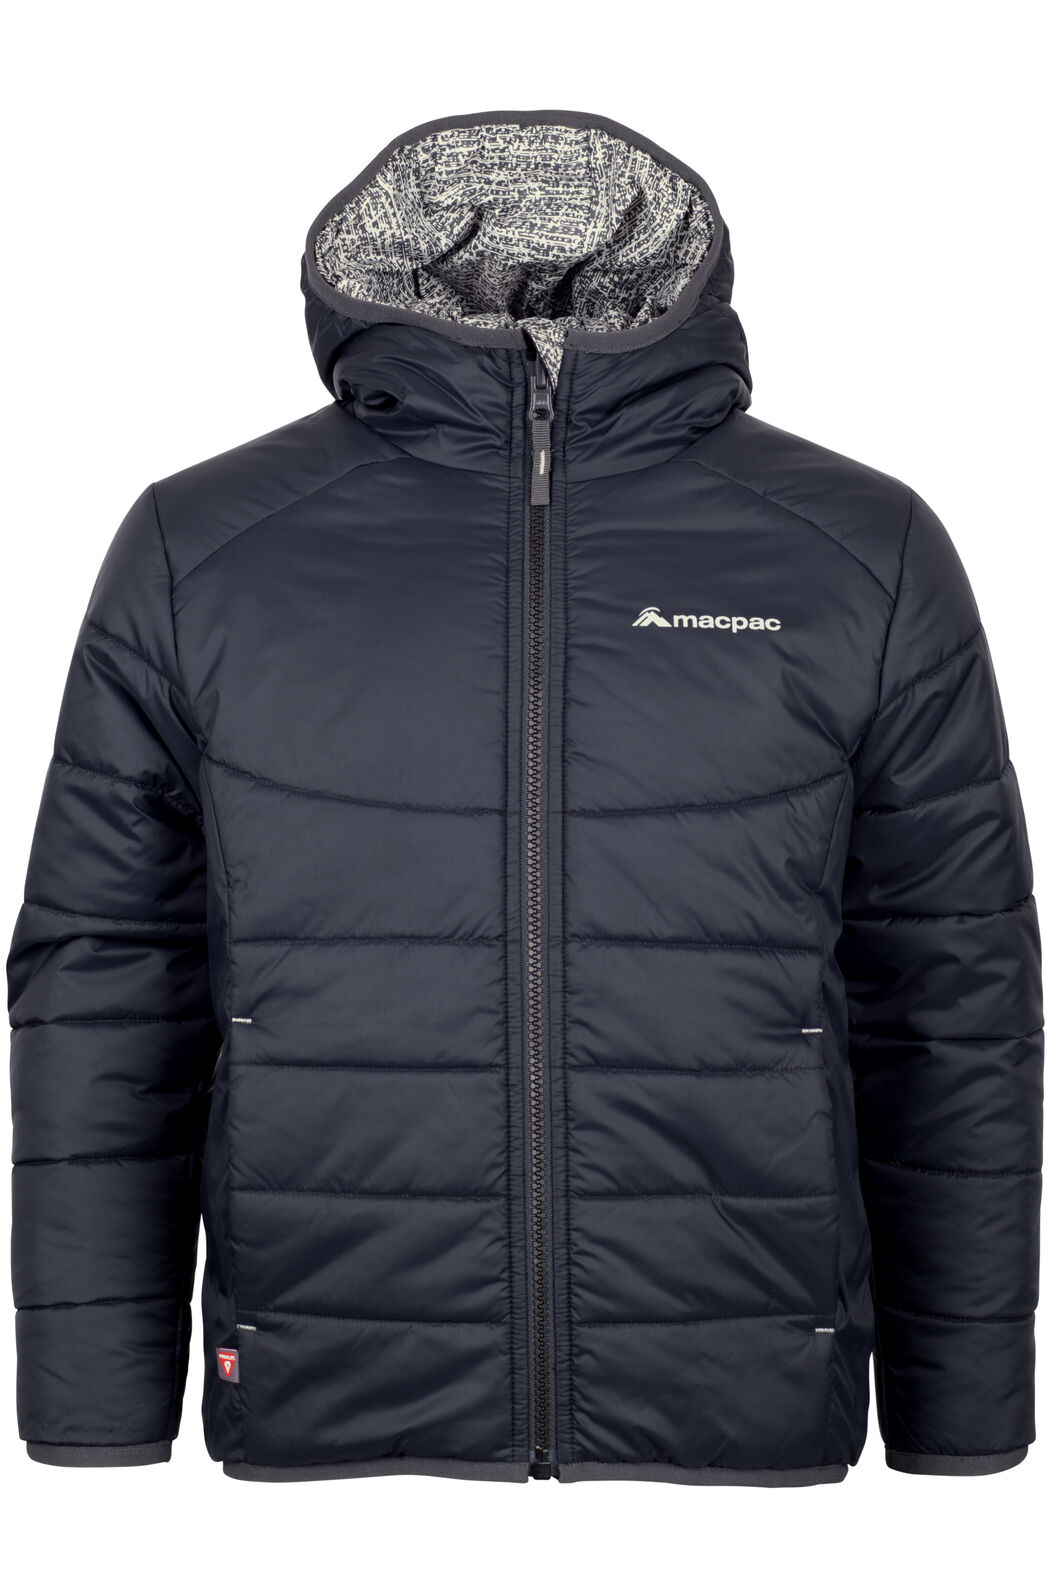 Macpac Pulsar Hooded Primaloft® SILVER Jacket - Kids', Black/Print, hi-res